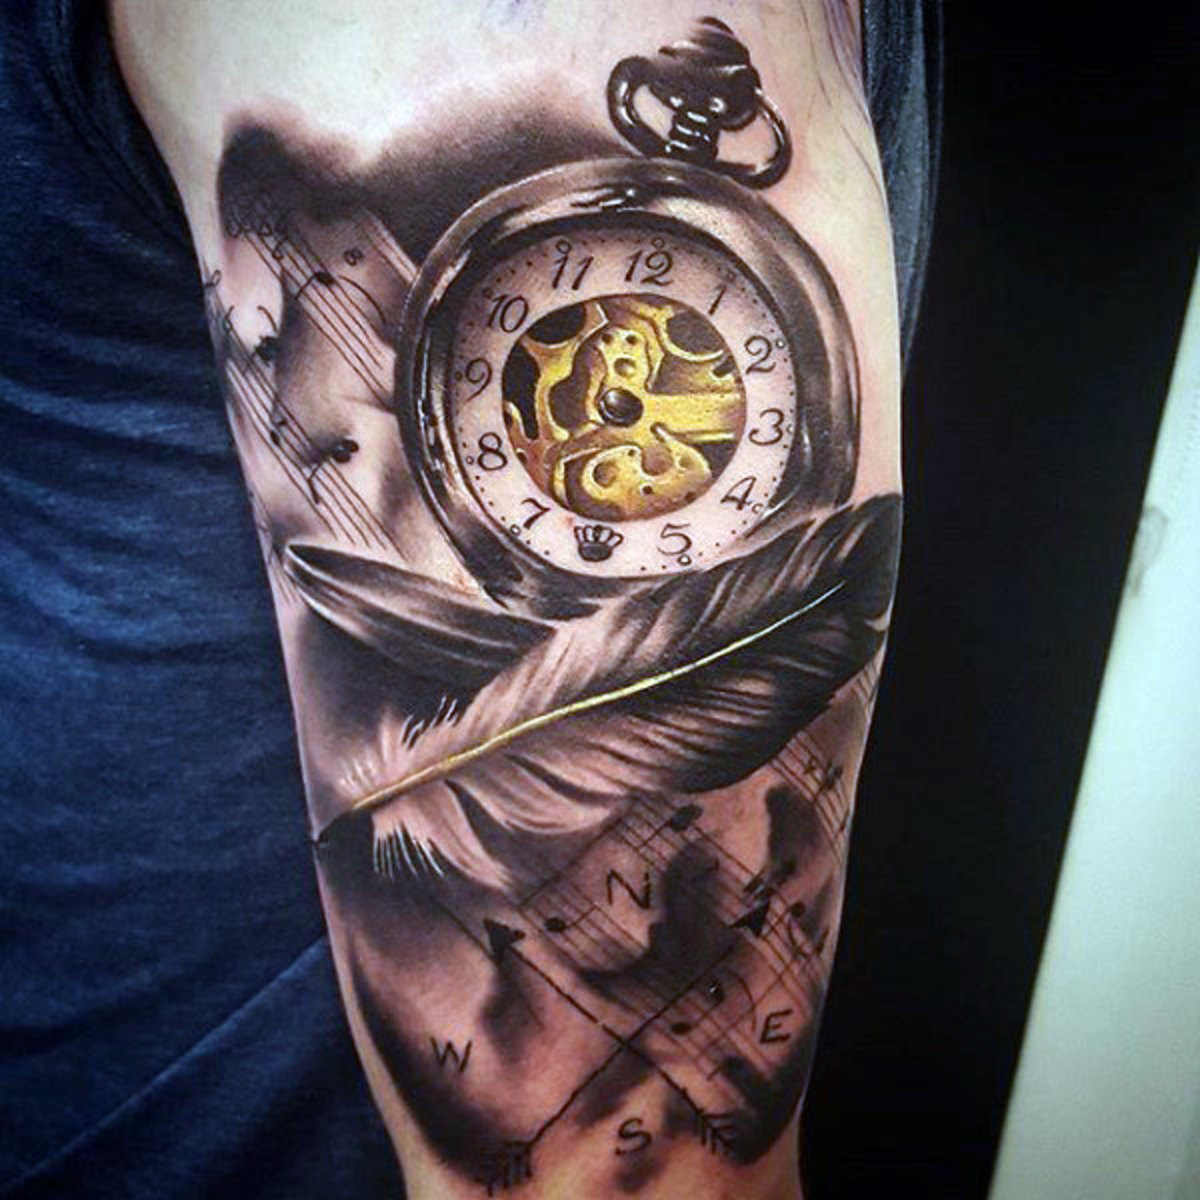 amazing-angel-feather-and-blazing-pocket-watch-tattoo-forearms-males